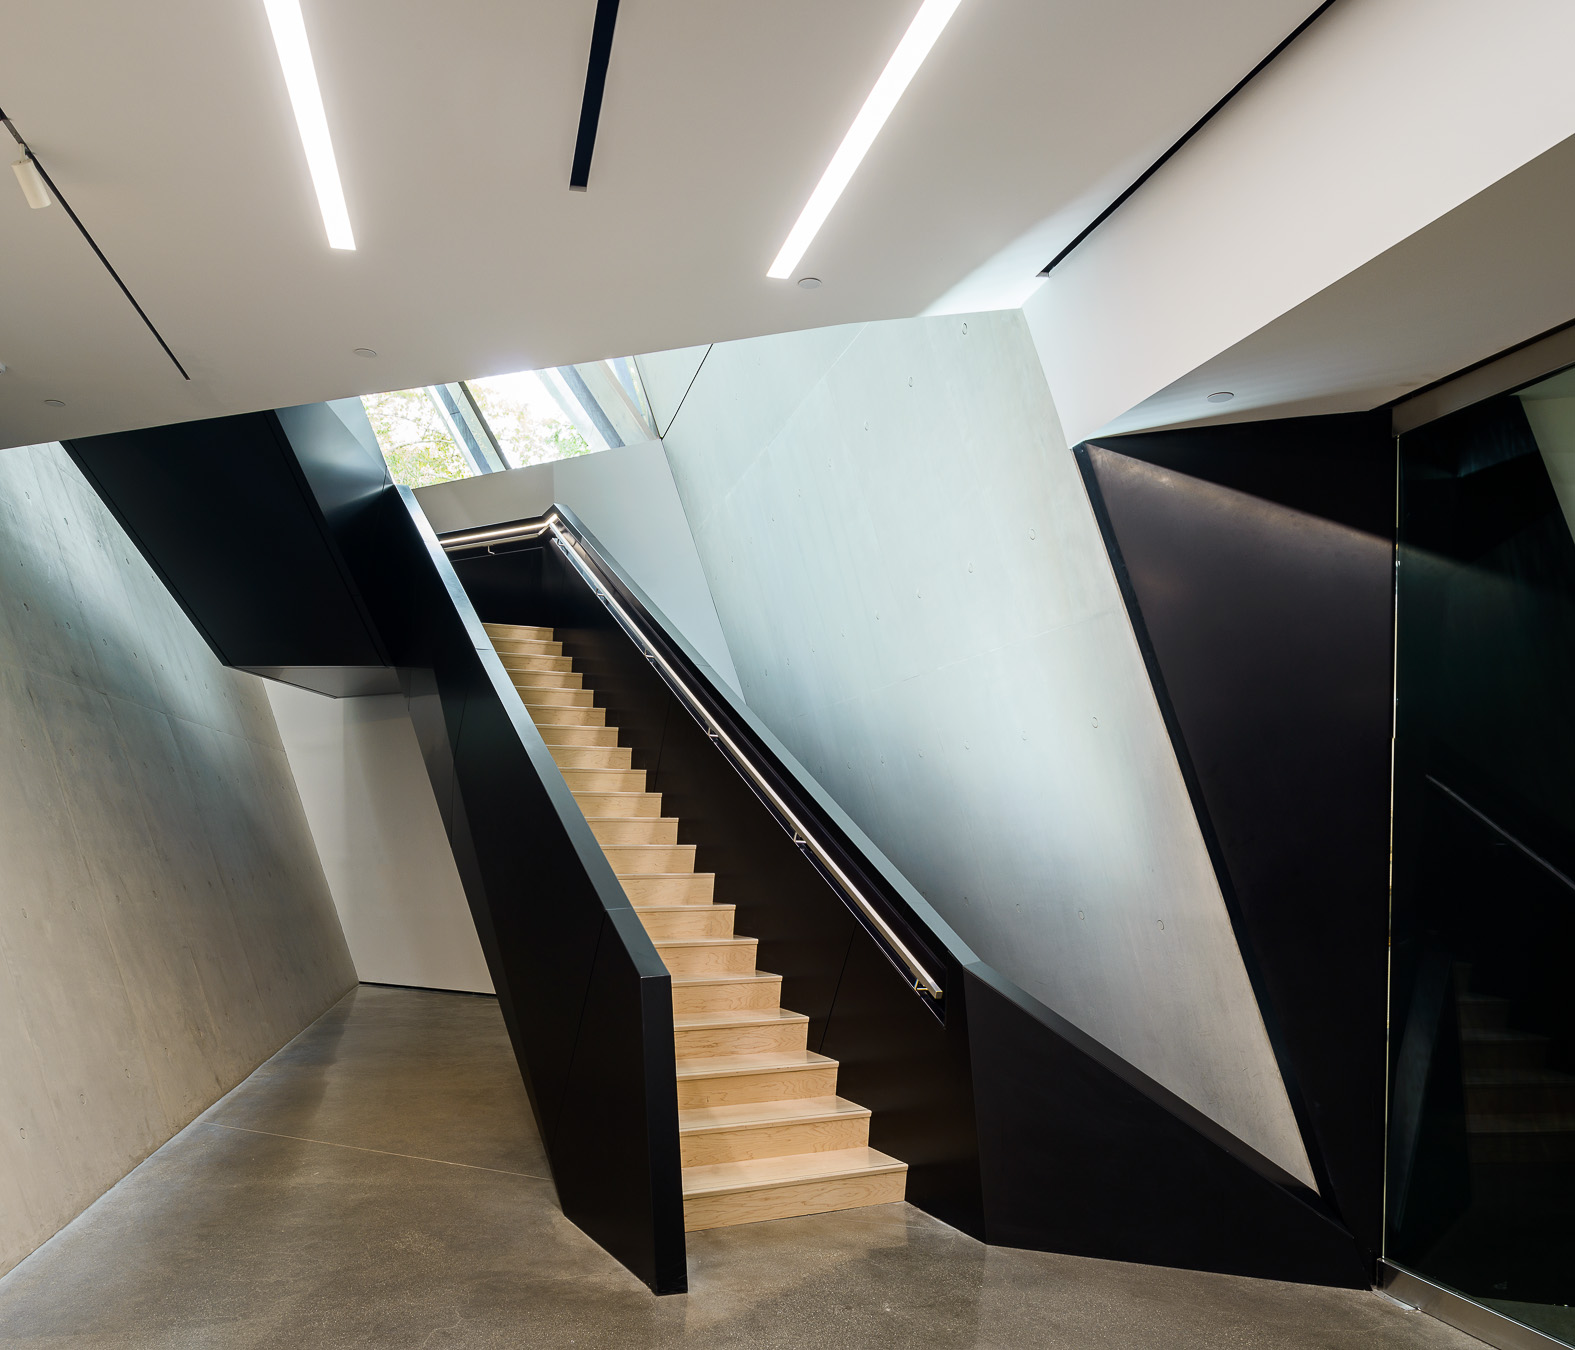 202-Zaha Hadid Broad Museum Lansing Doublespace Toronto Architectural Photography.jpg